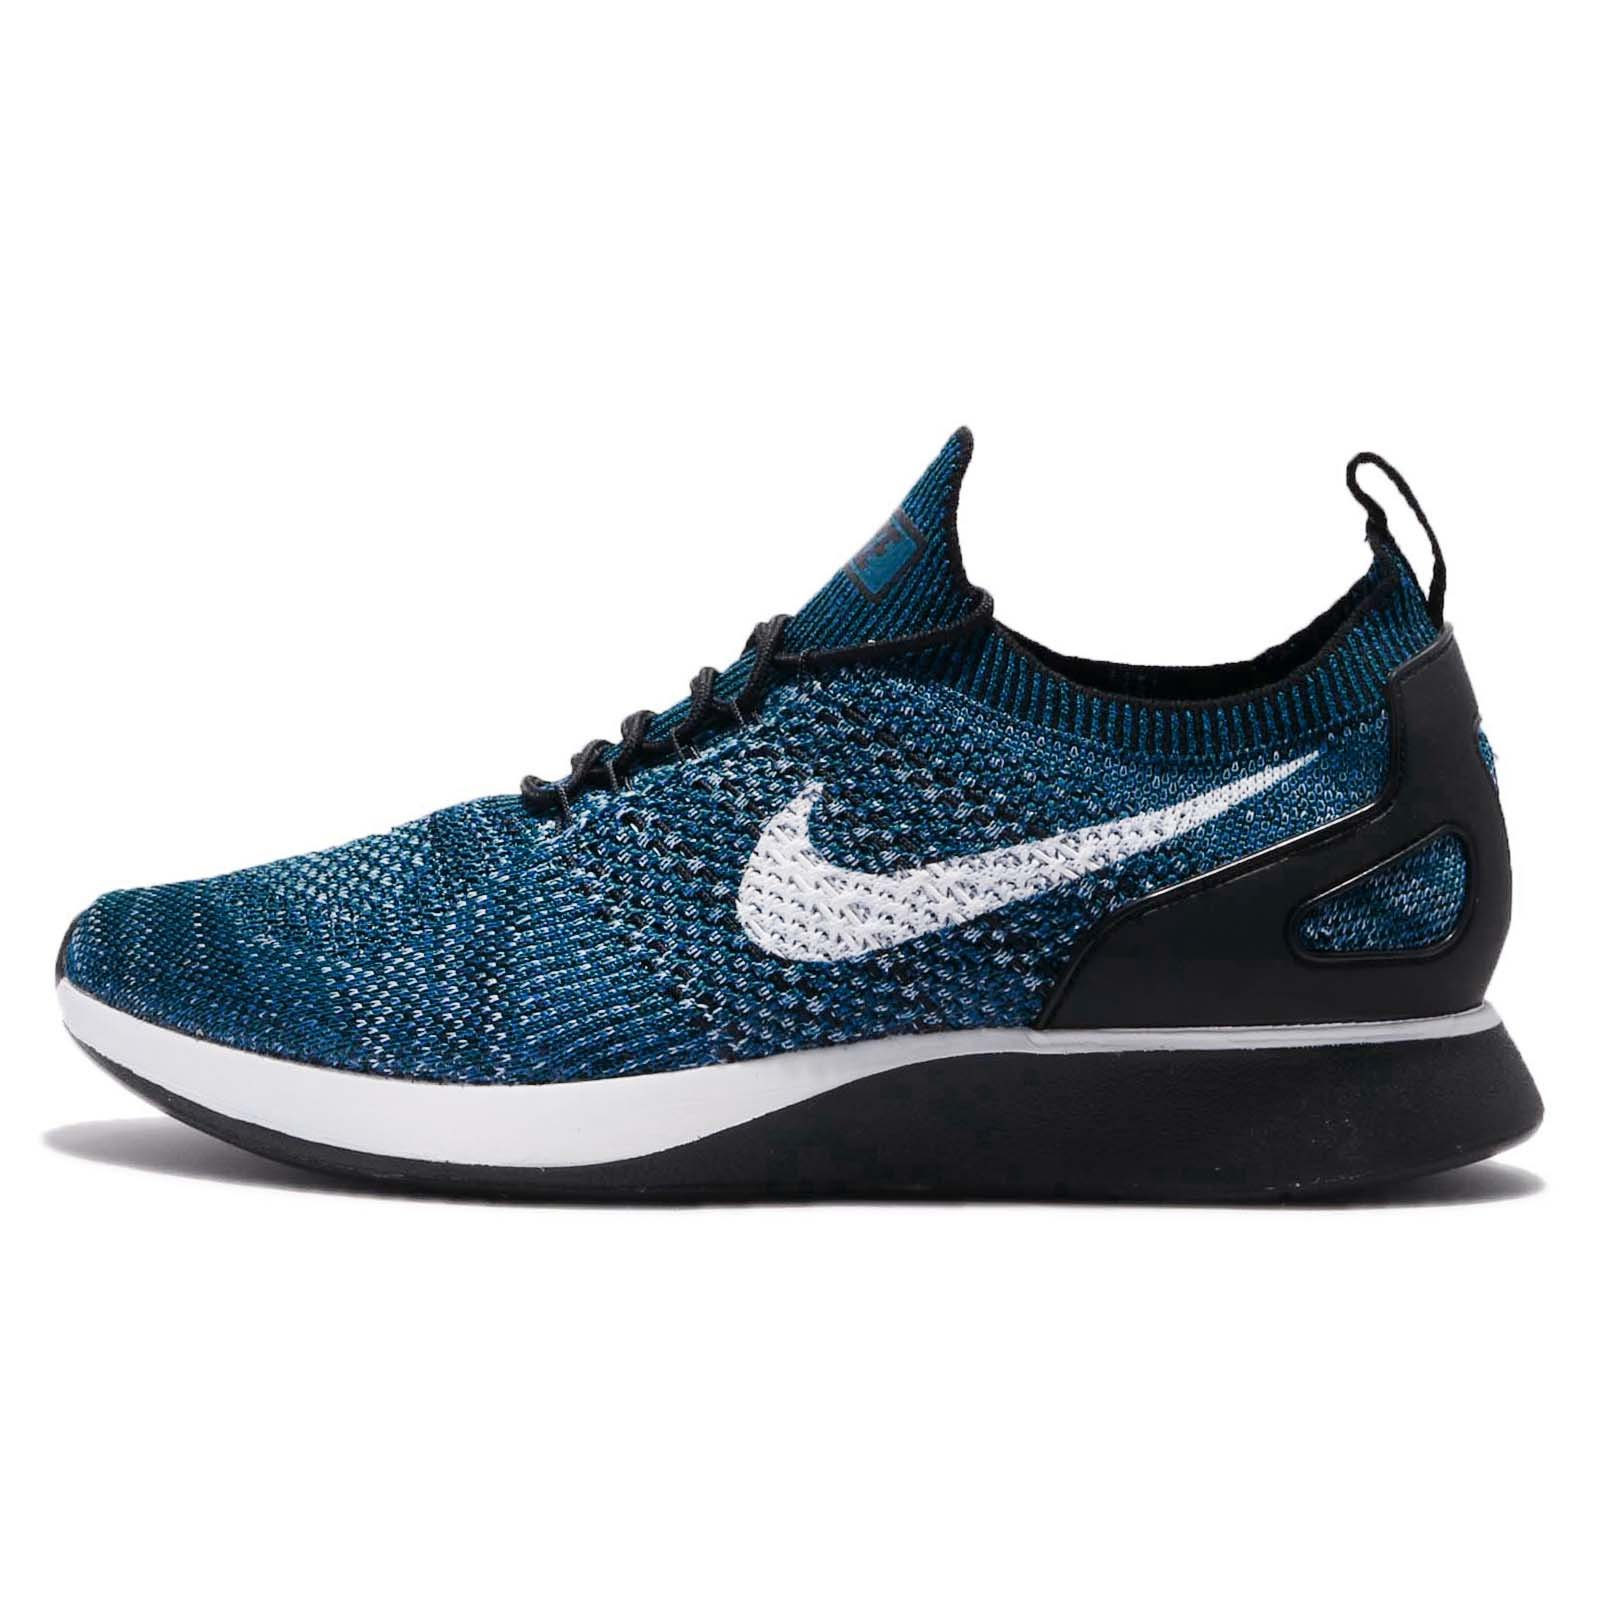 d47f3d3ddb5e4 Galleon - Nike Air Zoom Mariah Flyknit Racer Men s Sneakers 918264 300  Green Abyss (Blue)   Black Cirrus Blue (9)